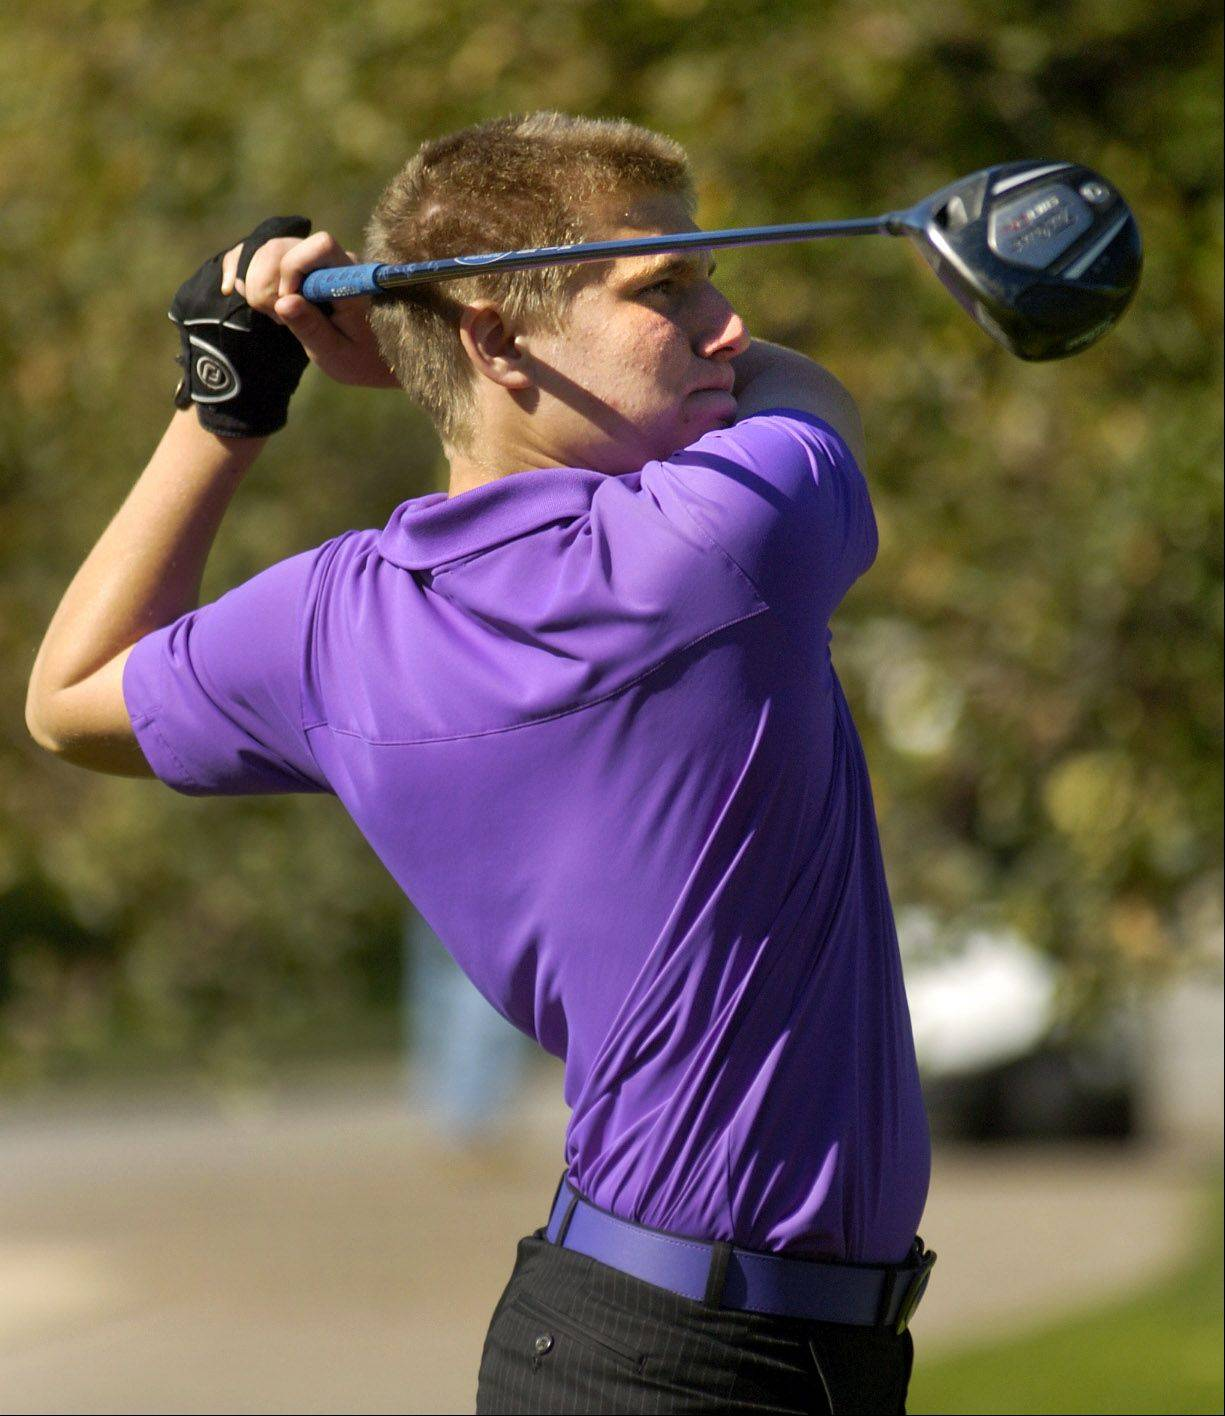 Danny Wojtowicz of Rolling Meadows tees off on No. 17 during the Mid-Suburban League meet at Arlington Lakes.